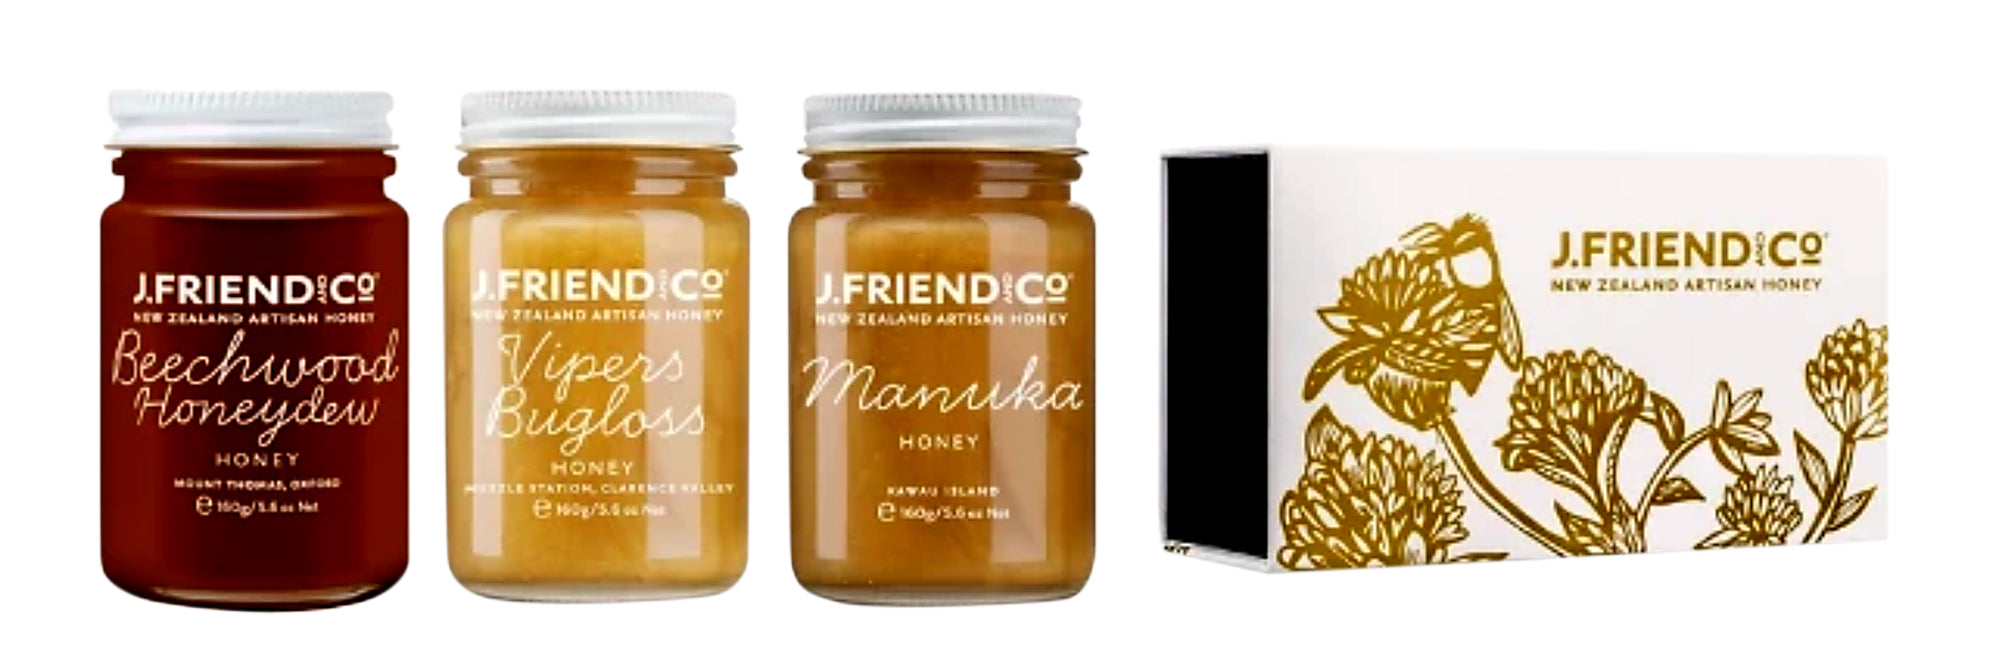 Tea Pairing Honey Collection Large - Manuka Honey | J Friend & Co